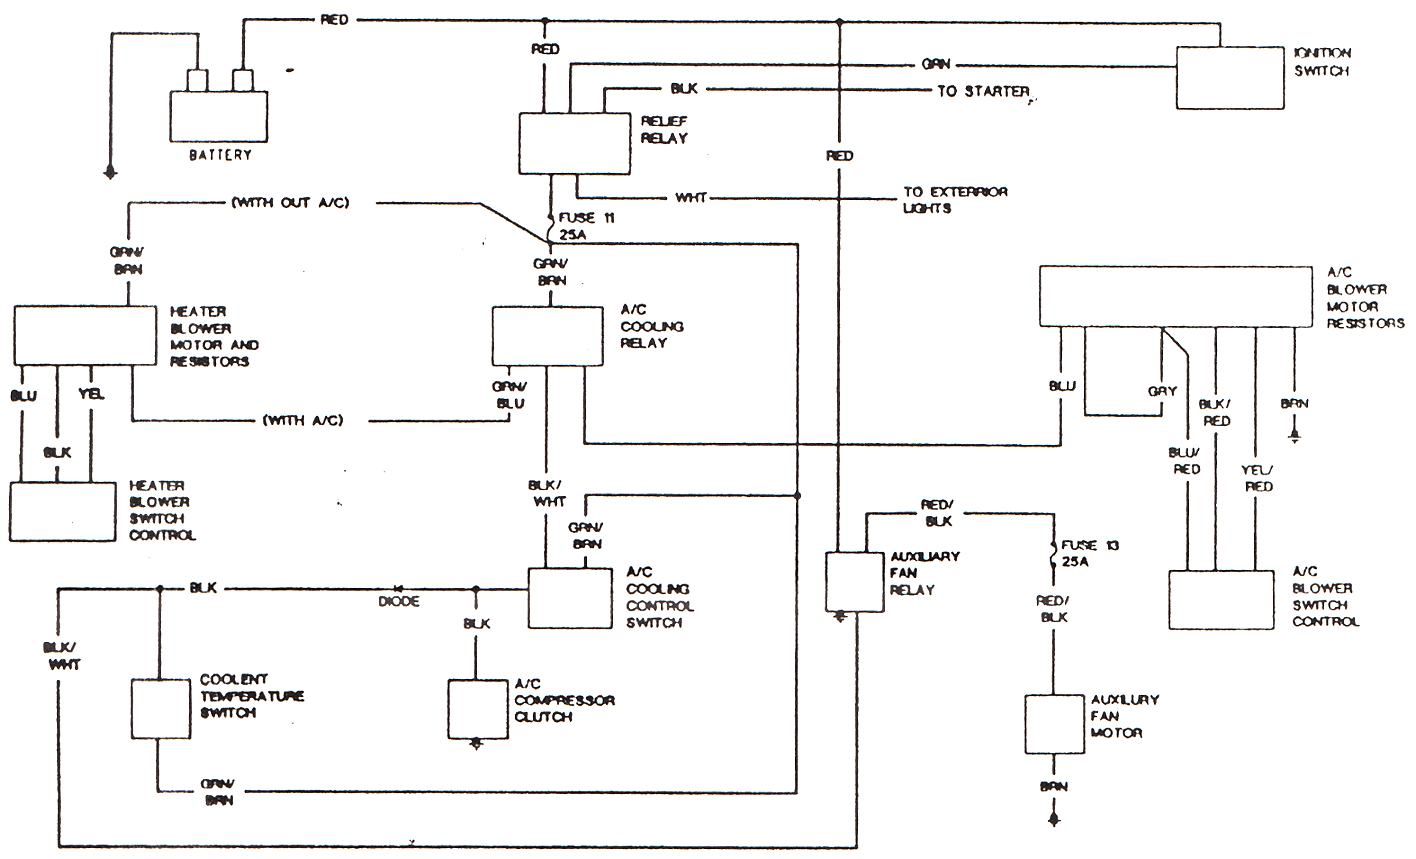 Wiring Diagram Http Pic2flycom 3phasecompressorwiringdiagram